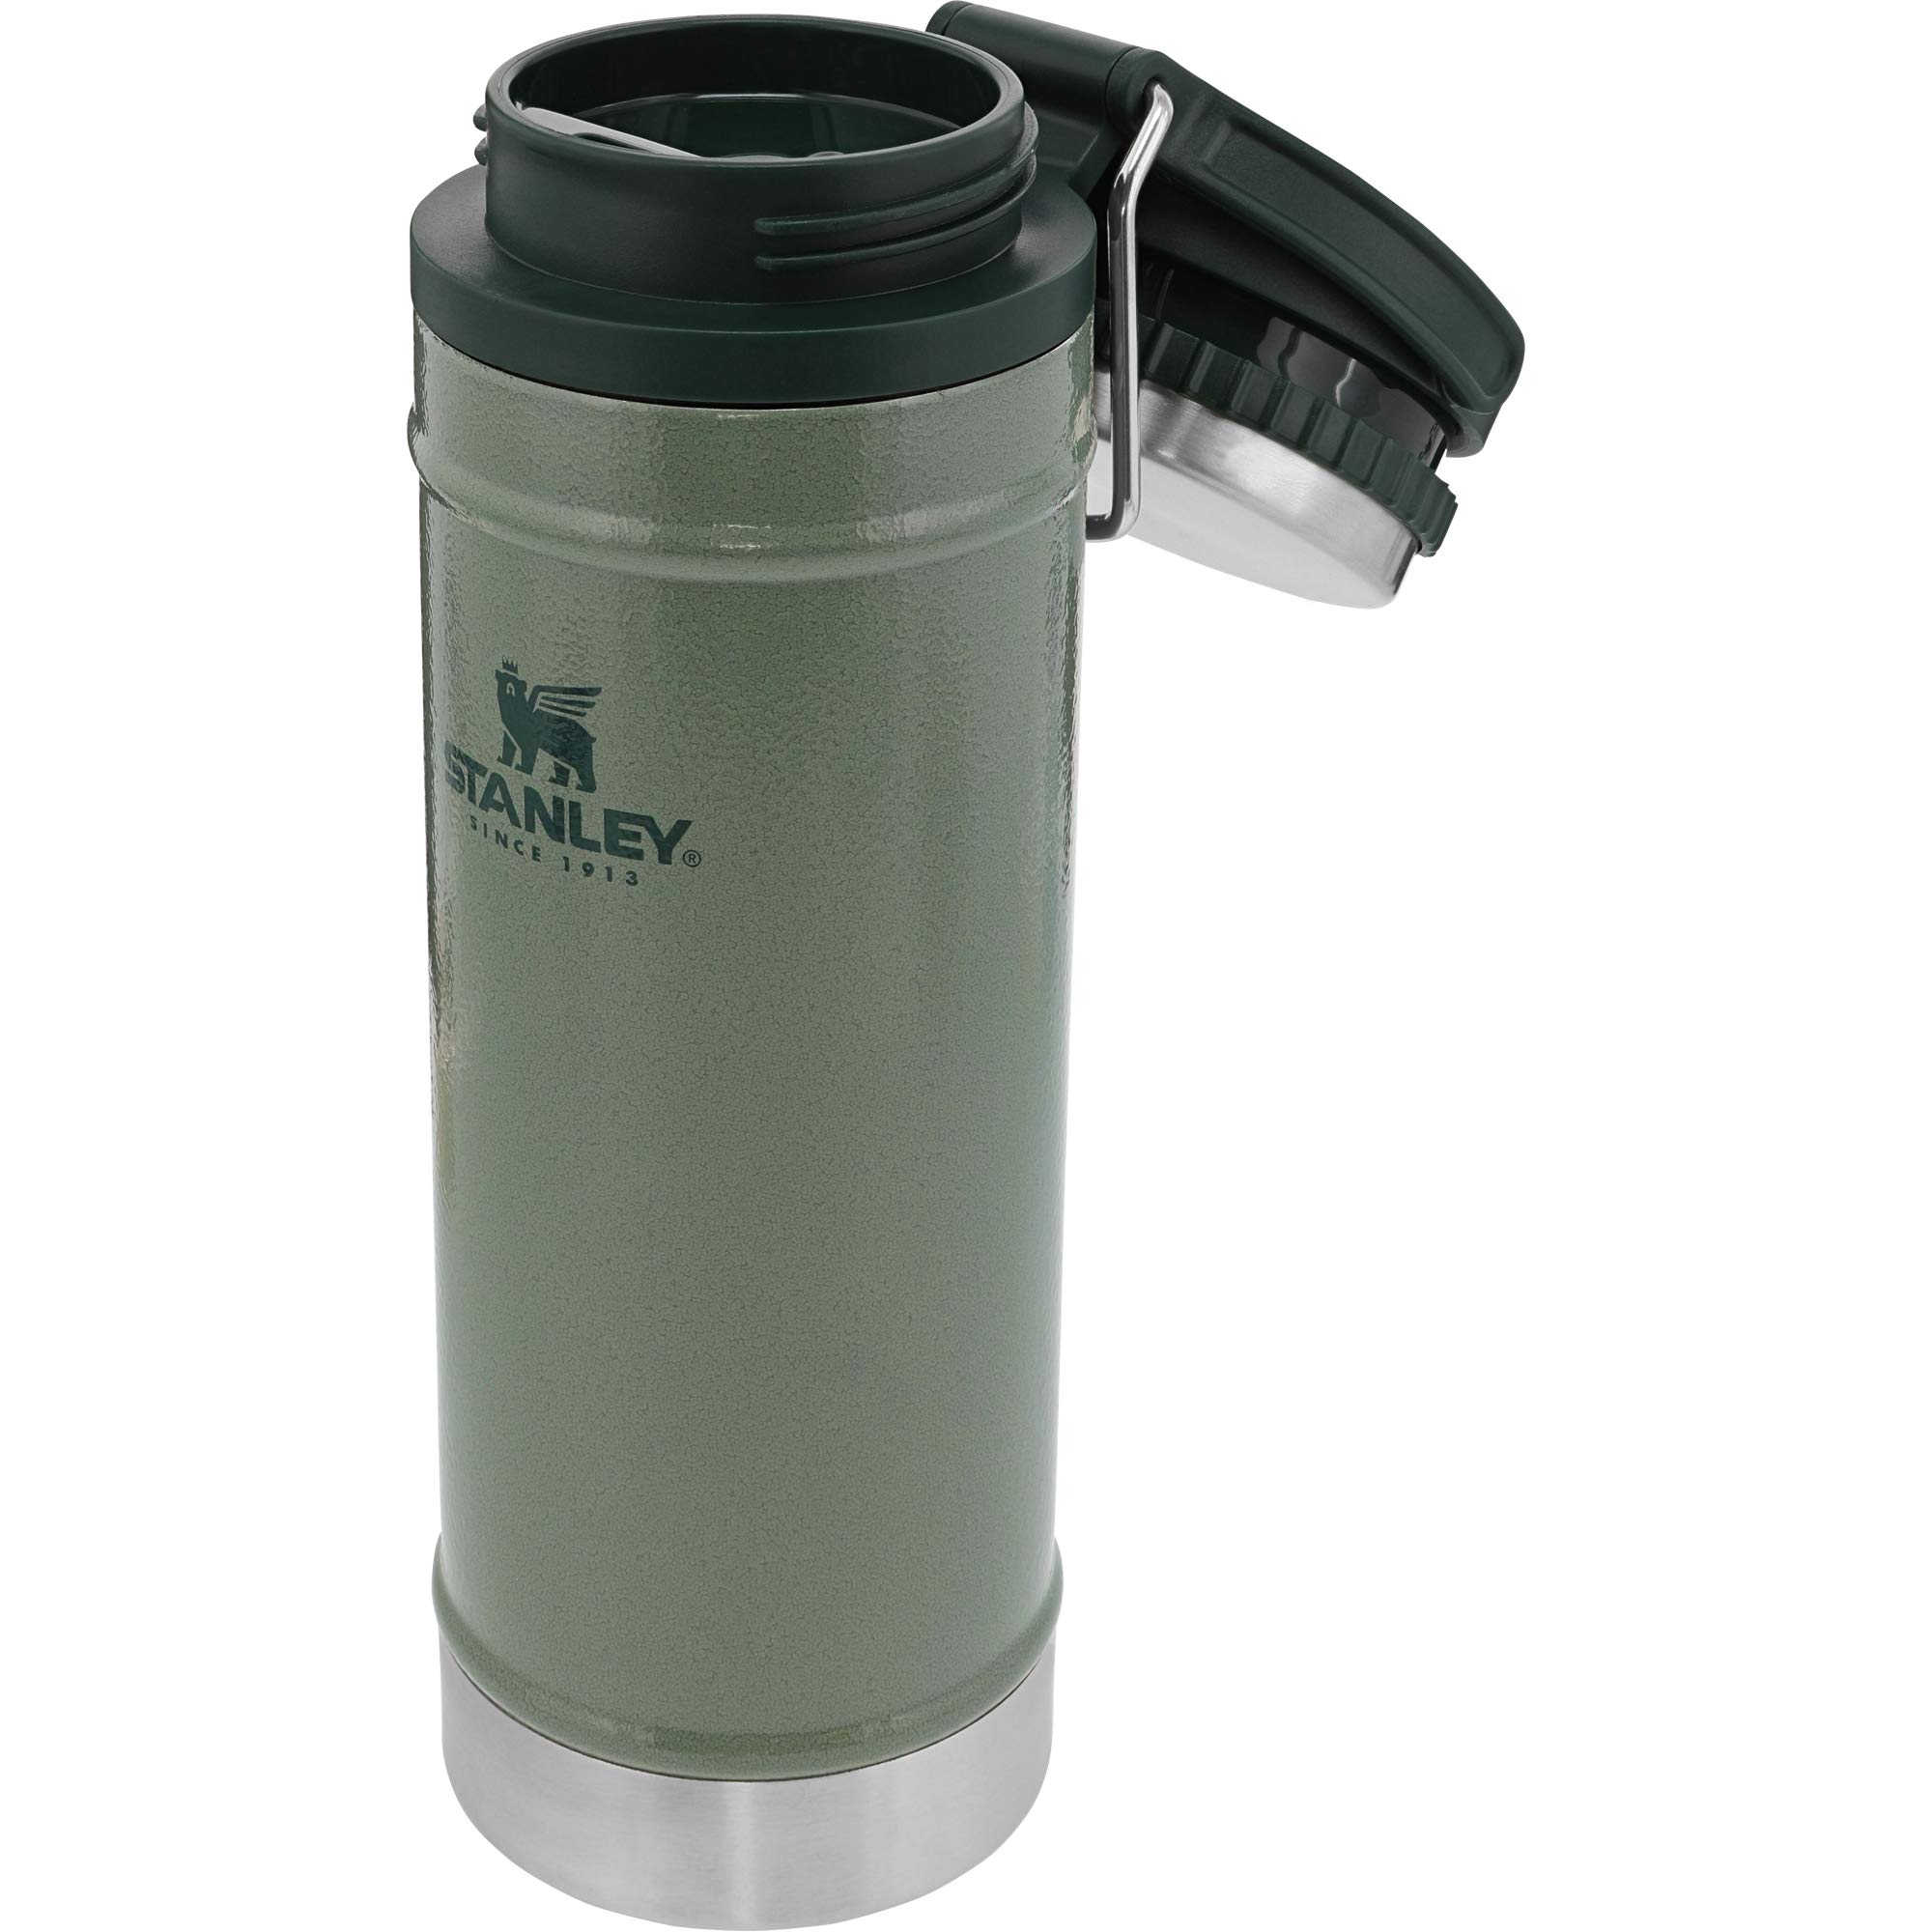 Stanley Classic Travel Mug French Press 16oz by Stanley (Image #3)